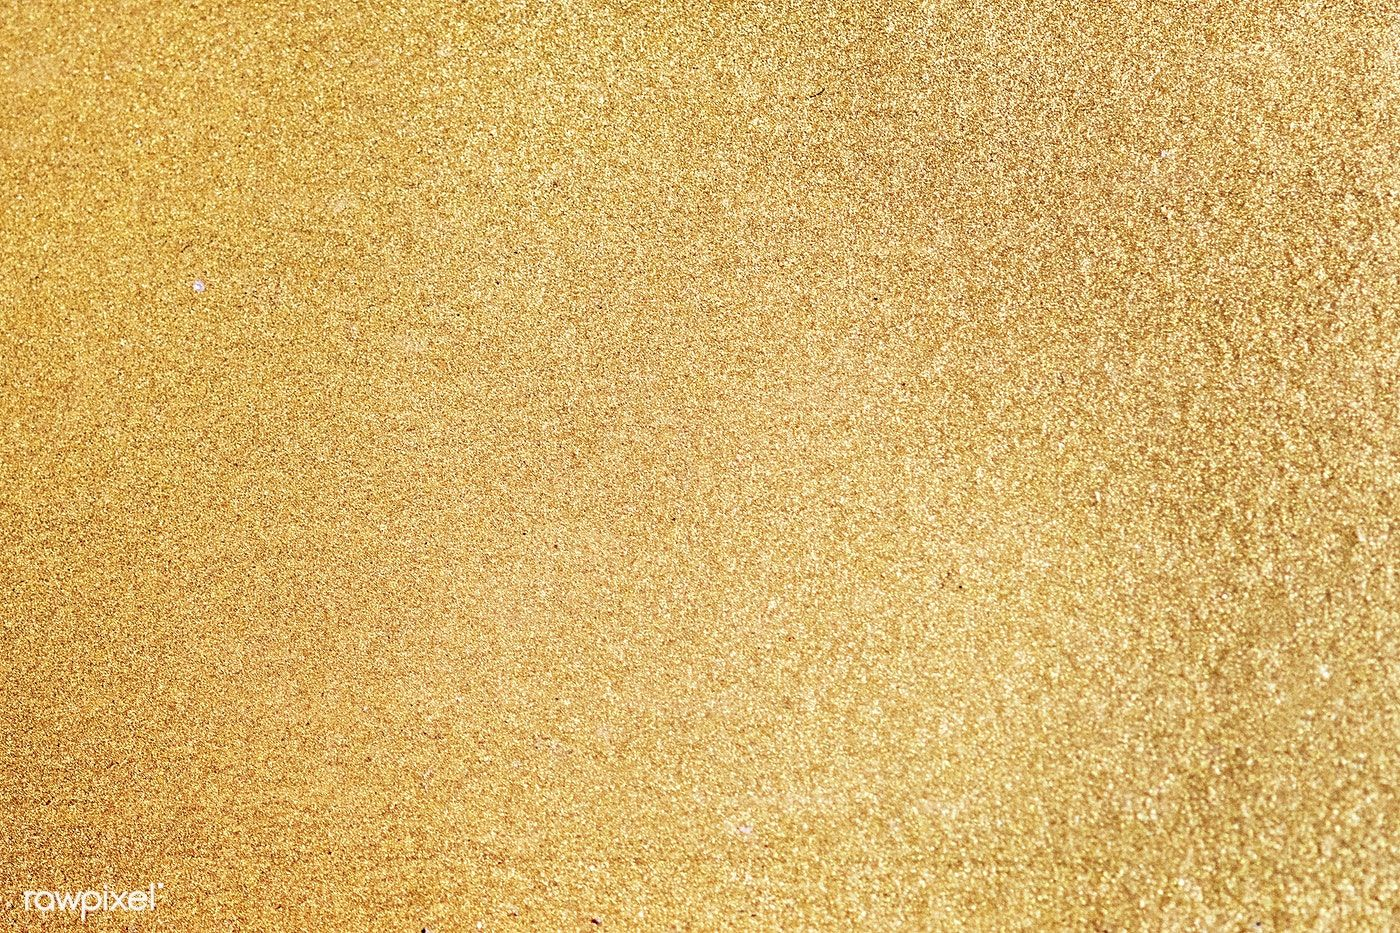 Gold Textured Background Free Image By Rawpixel Com Gold